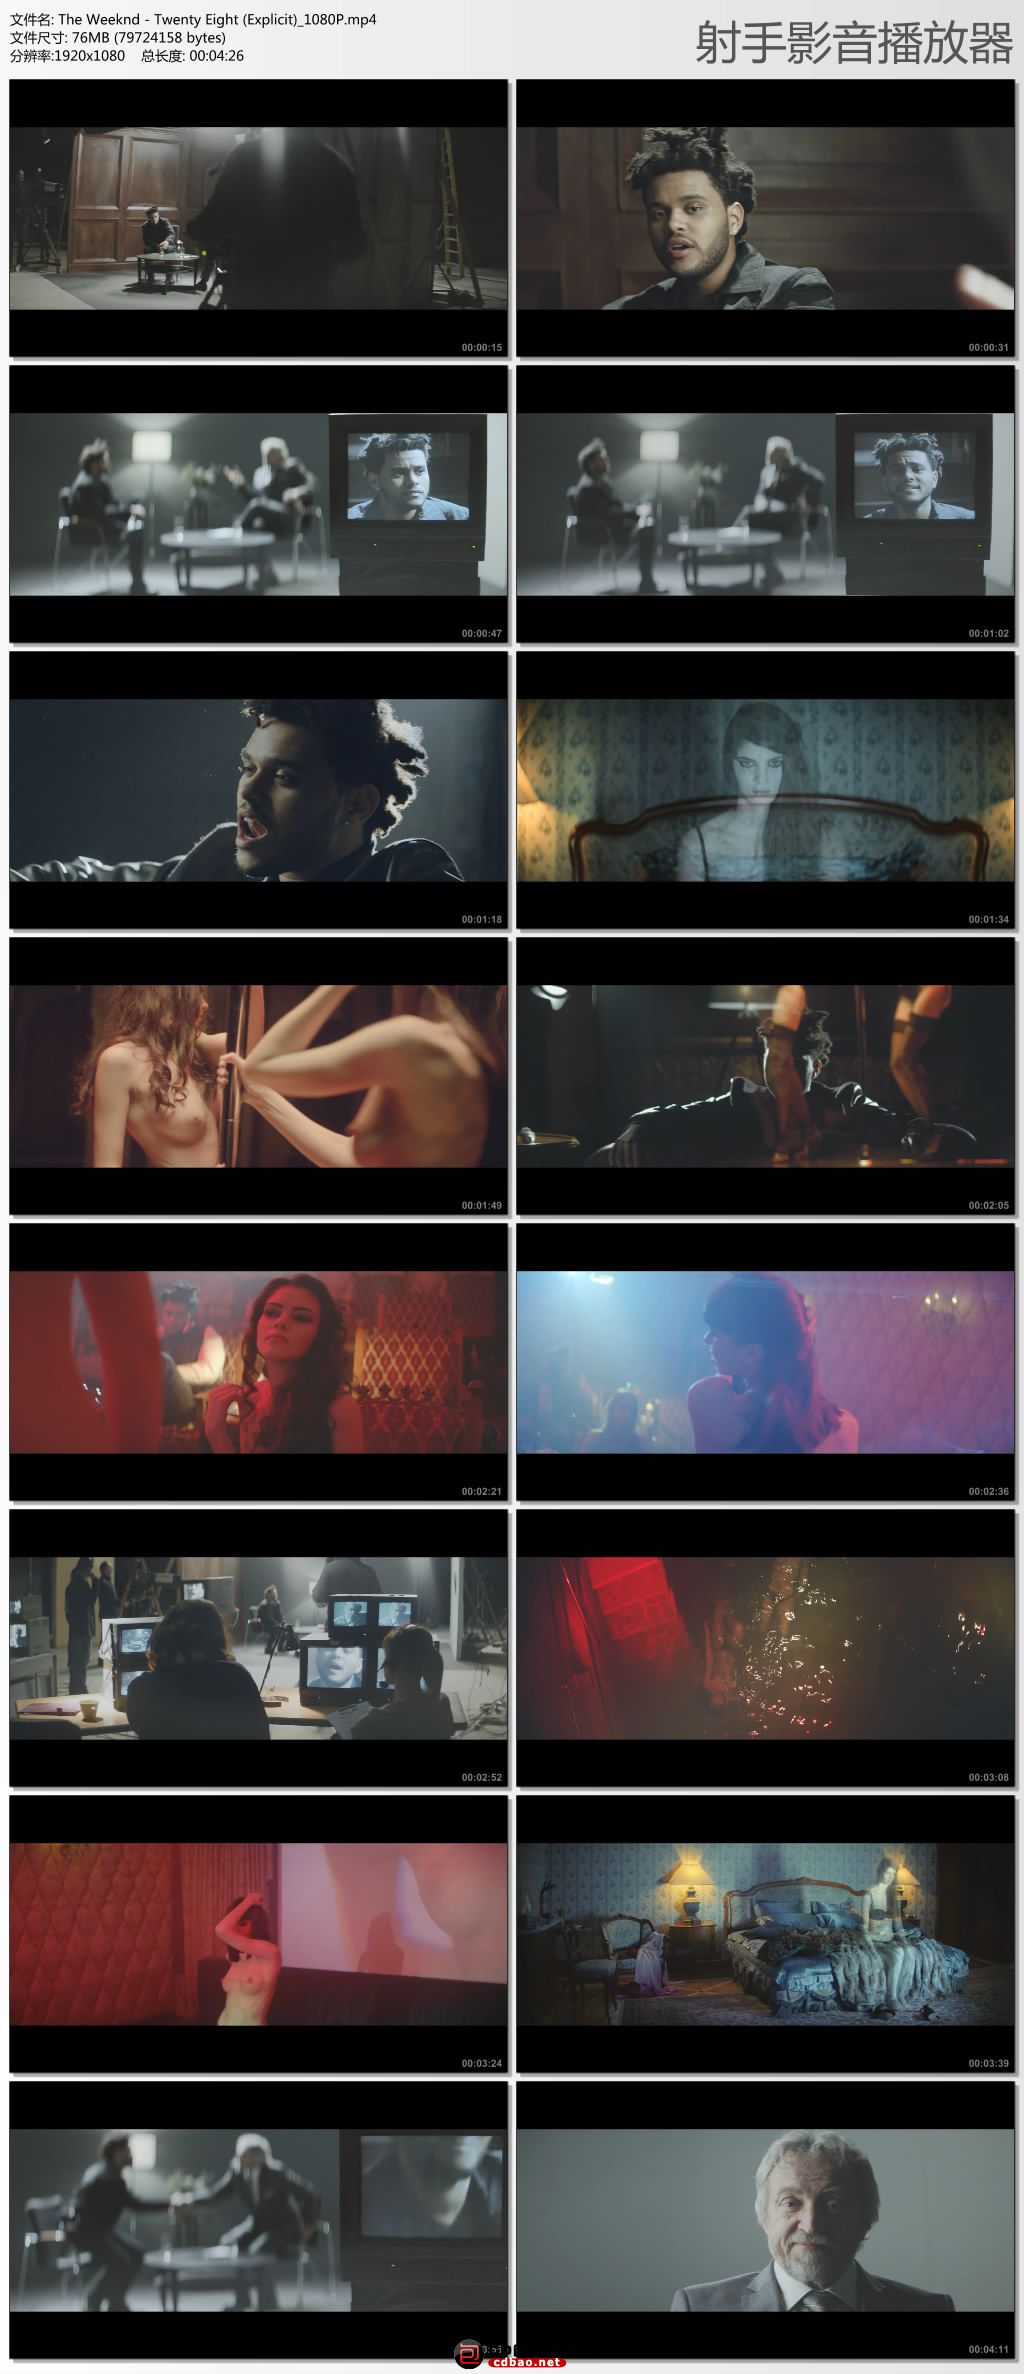 The Weeknd - Twenty Eight (Explicit)_1080P.jpg